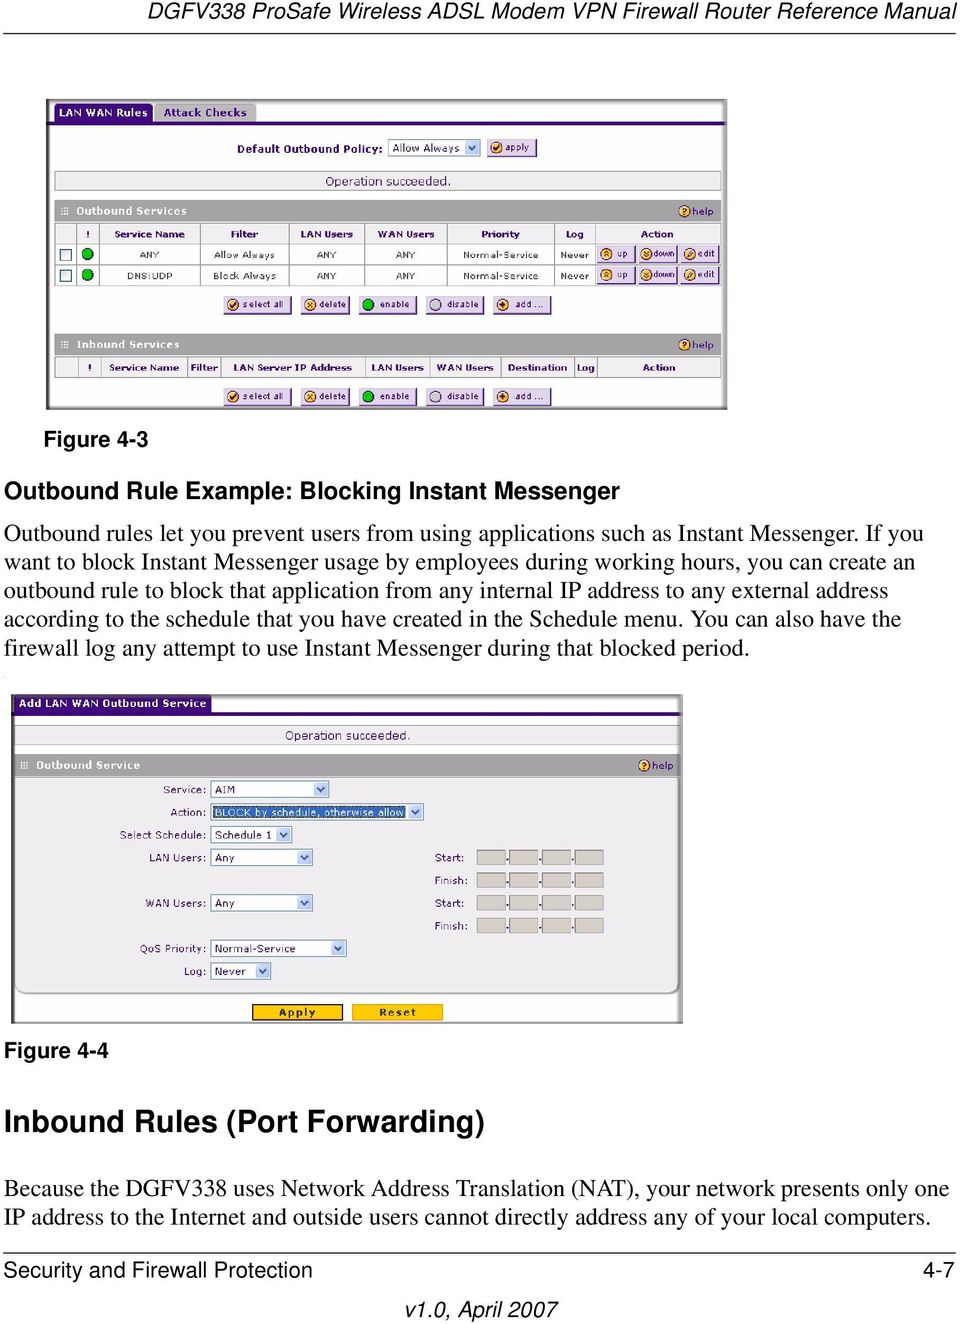 If you want to block Instant Messenger usage by employees during working hours, you can create an outbound rule to block that application from any internal IP address to any external address